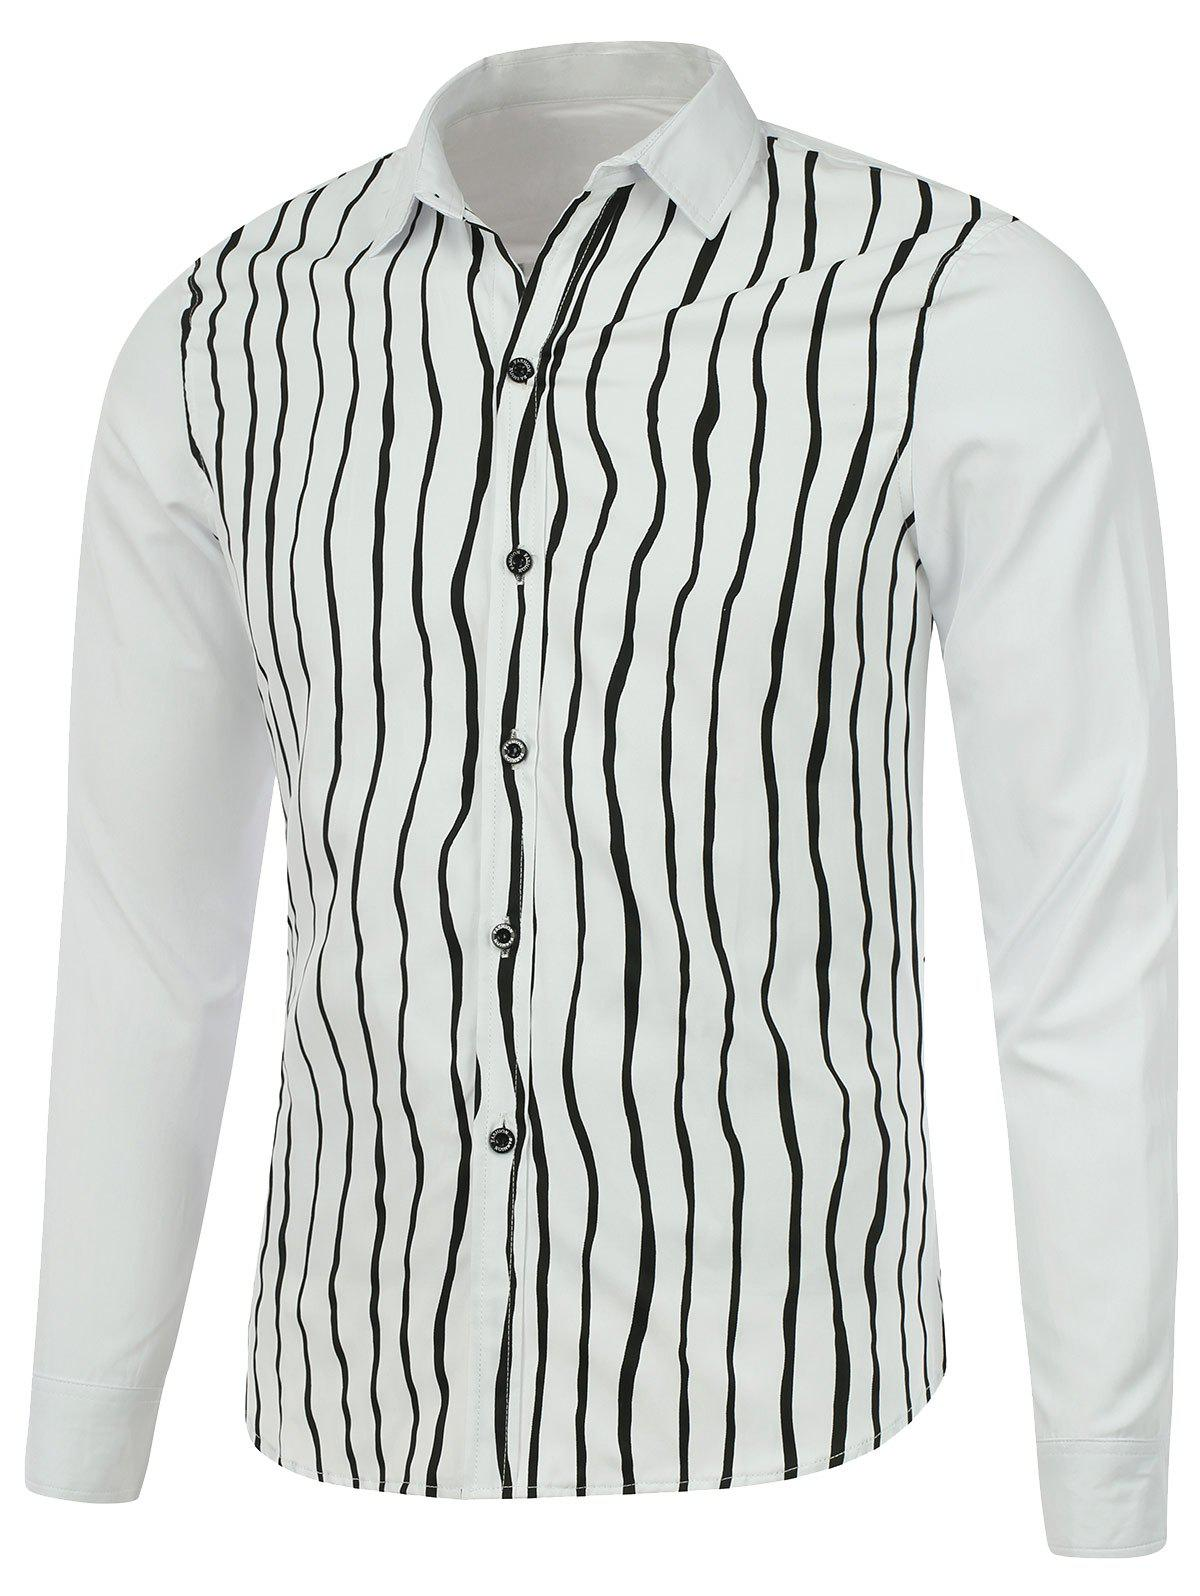 Vertical Striped Long Sleeve Button Up Shirt - WHITE XL